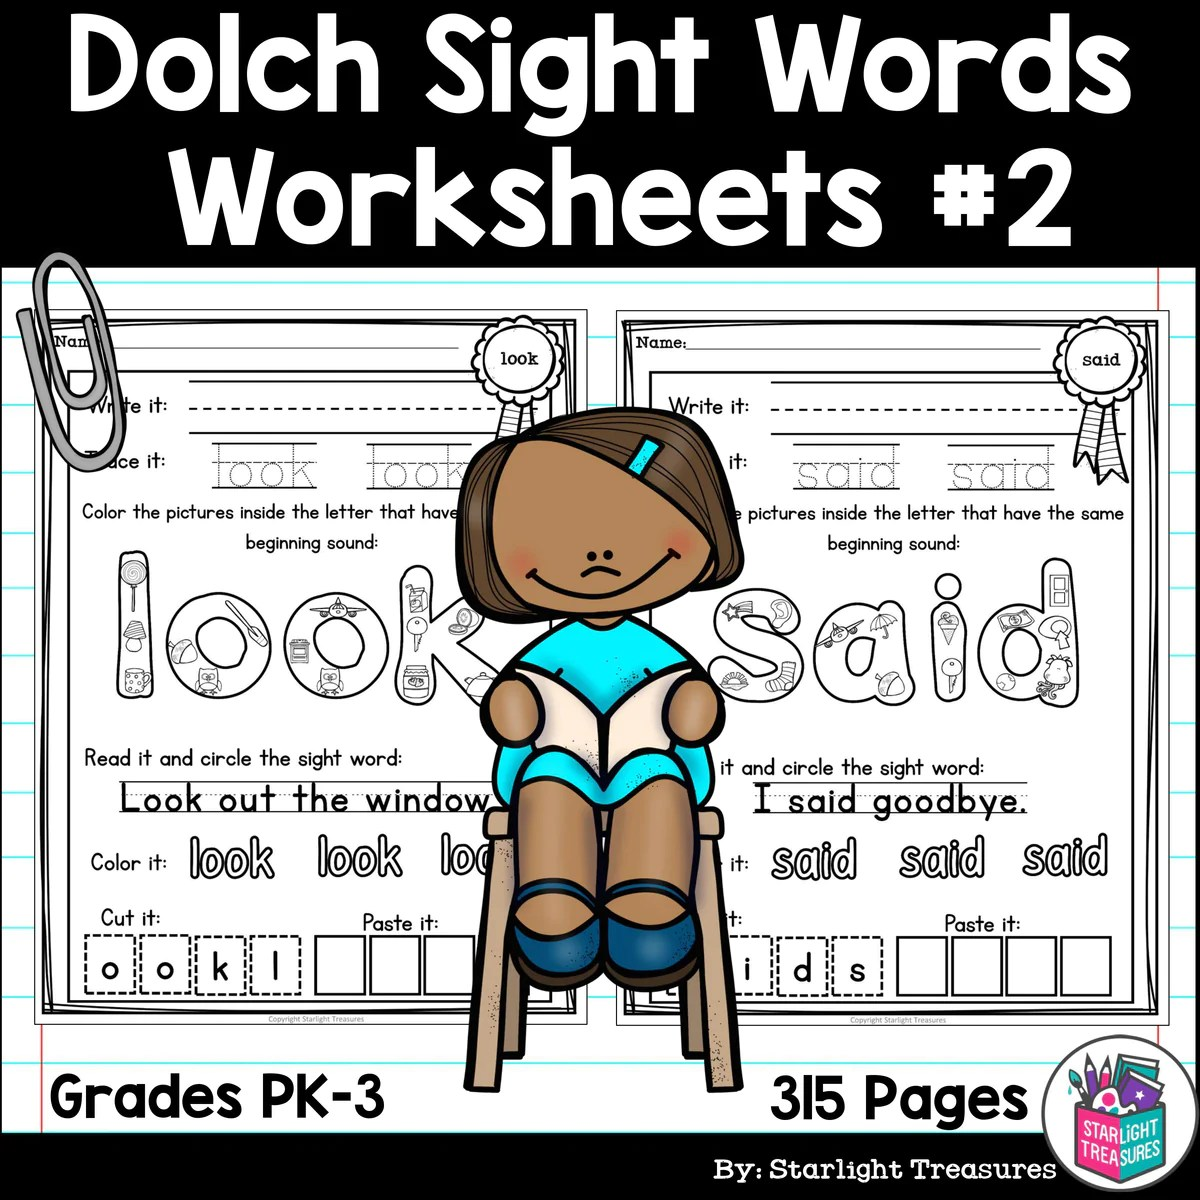 Dolch Sight Words Worksheets and Activities for Early Readers #2 –  Starlight Treasures Resources [ 1200 x 1200 Pixel ]